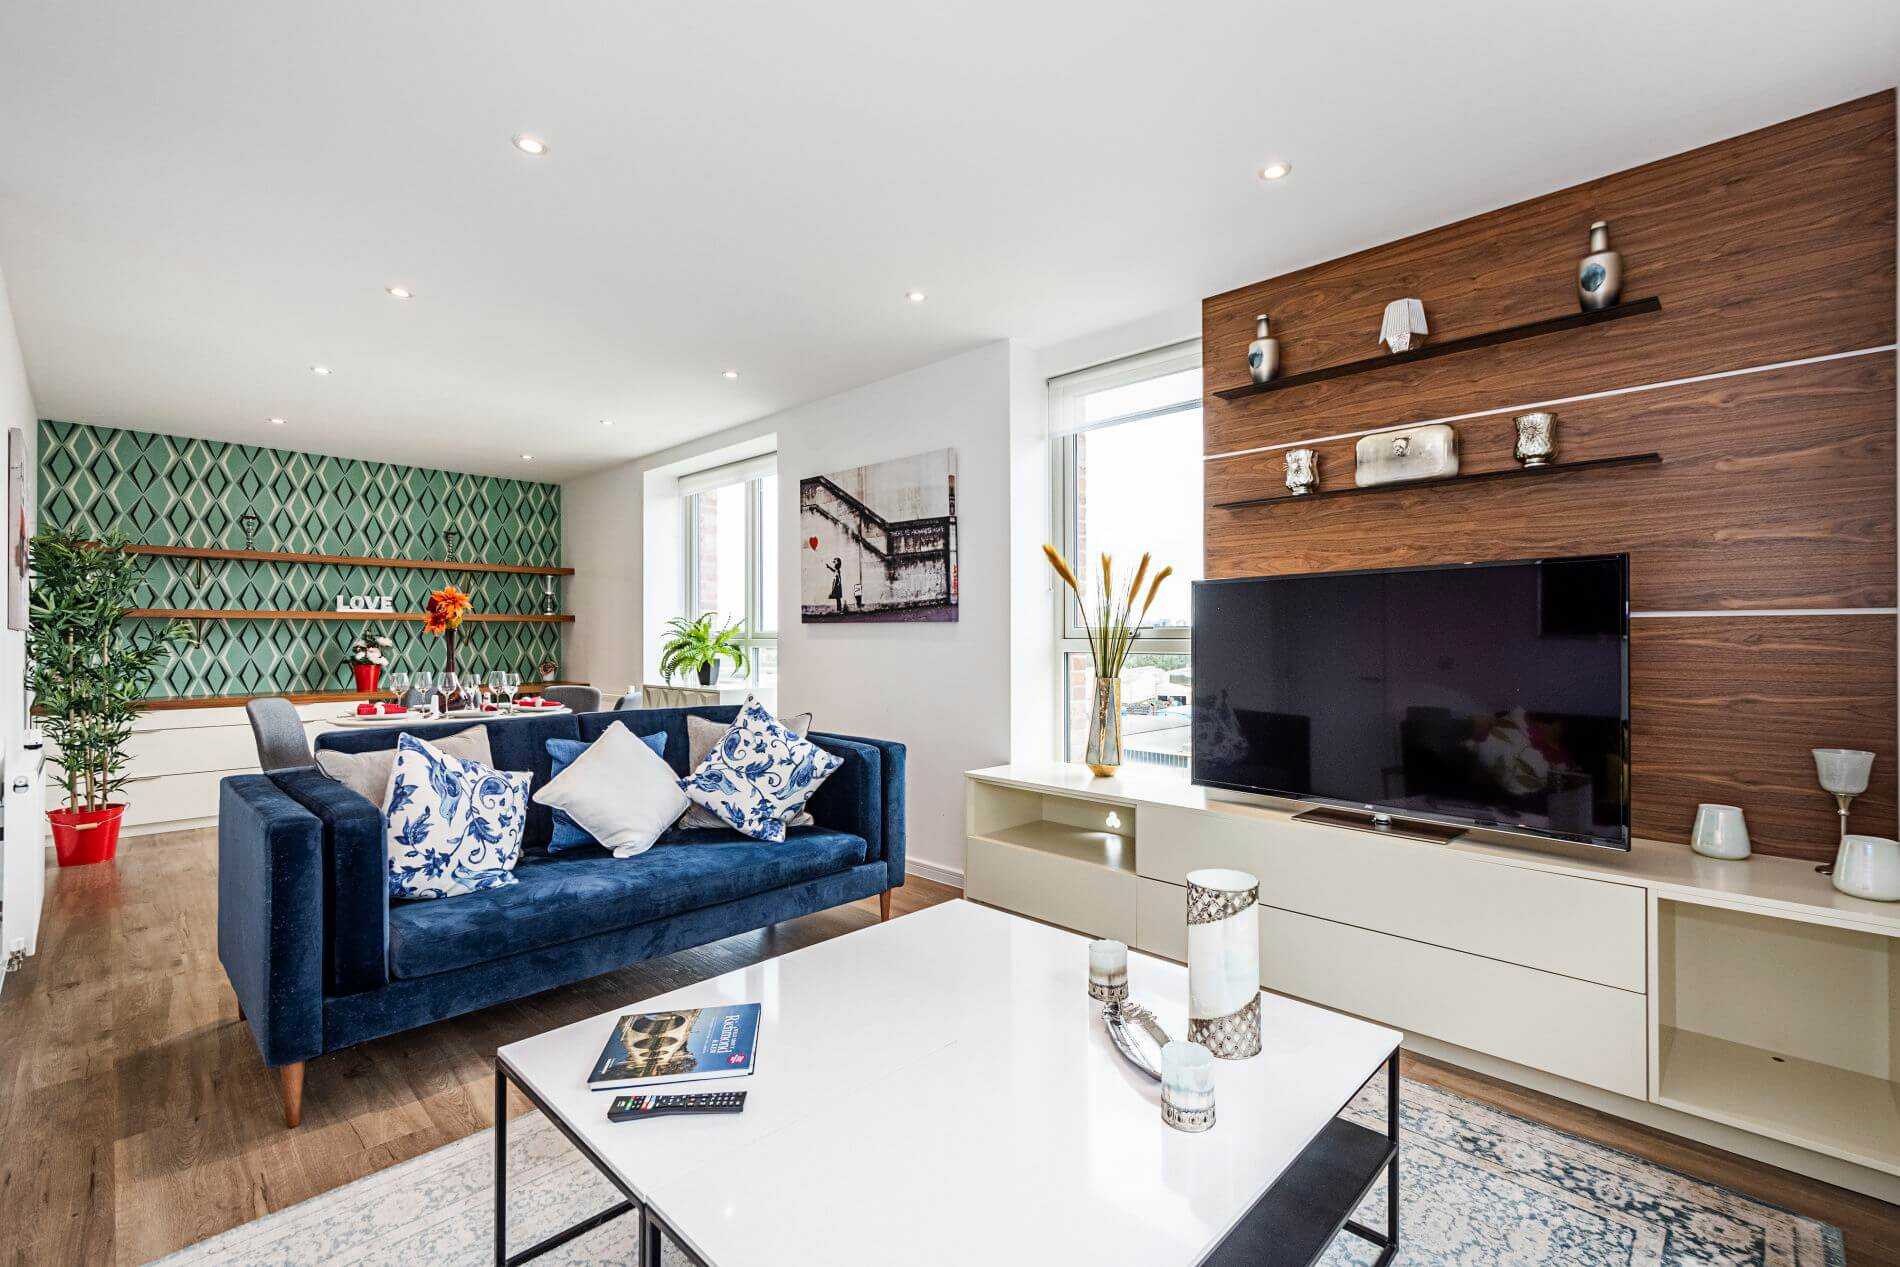 Fully equipped 3 bedroom penthouse in Chiswick with a balcony